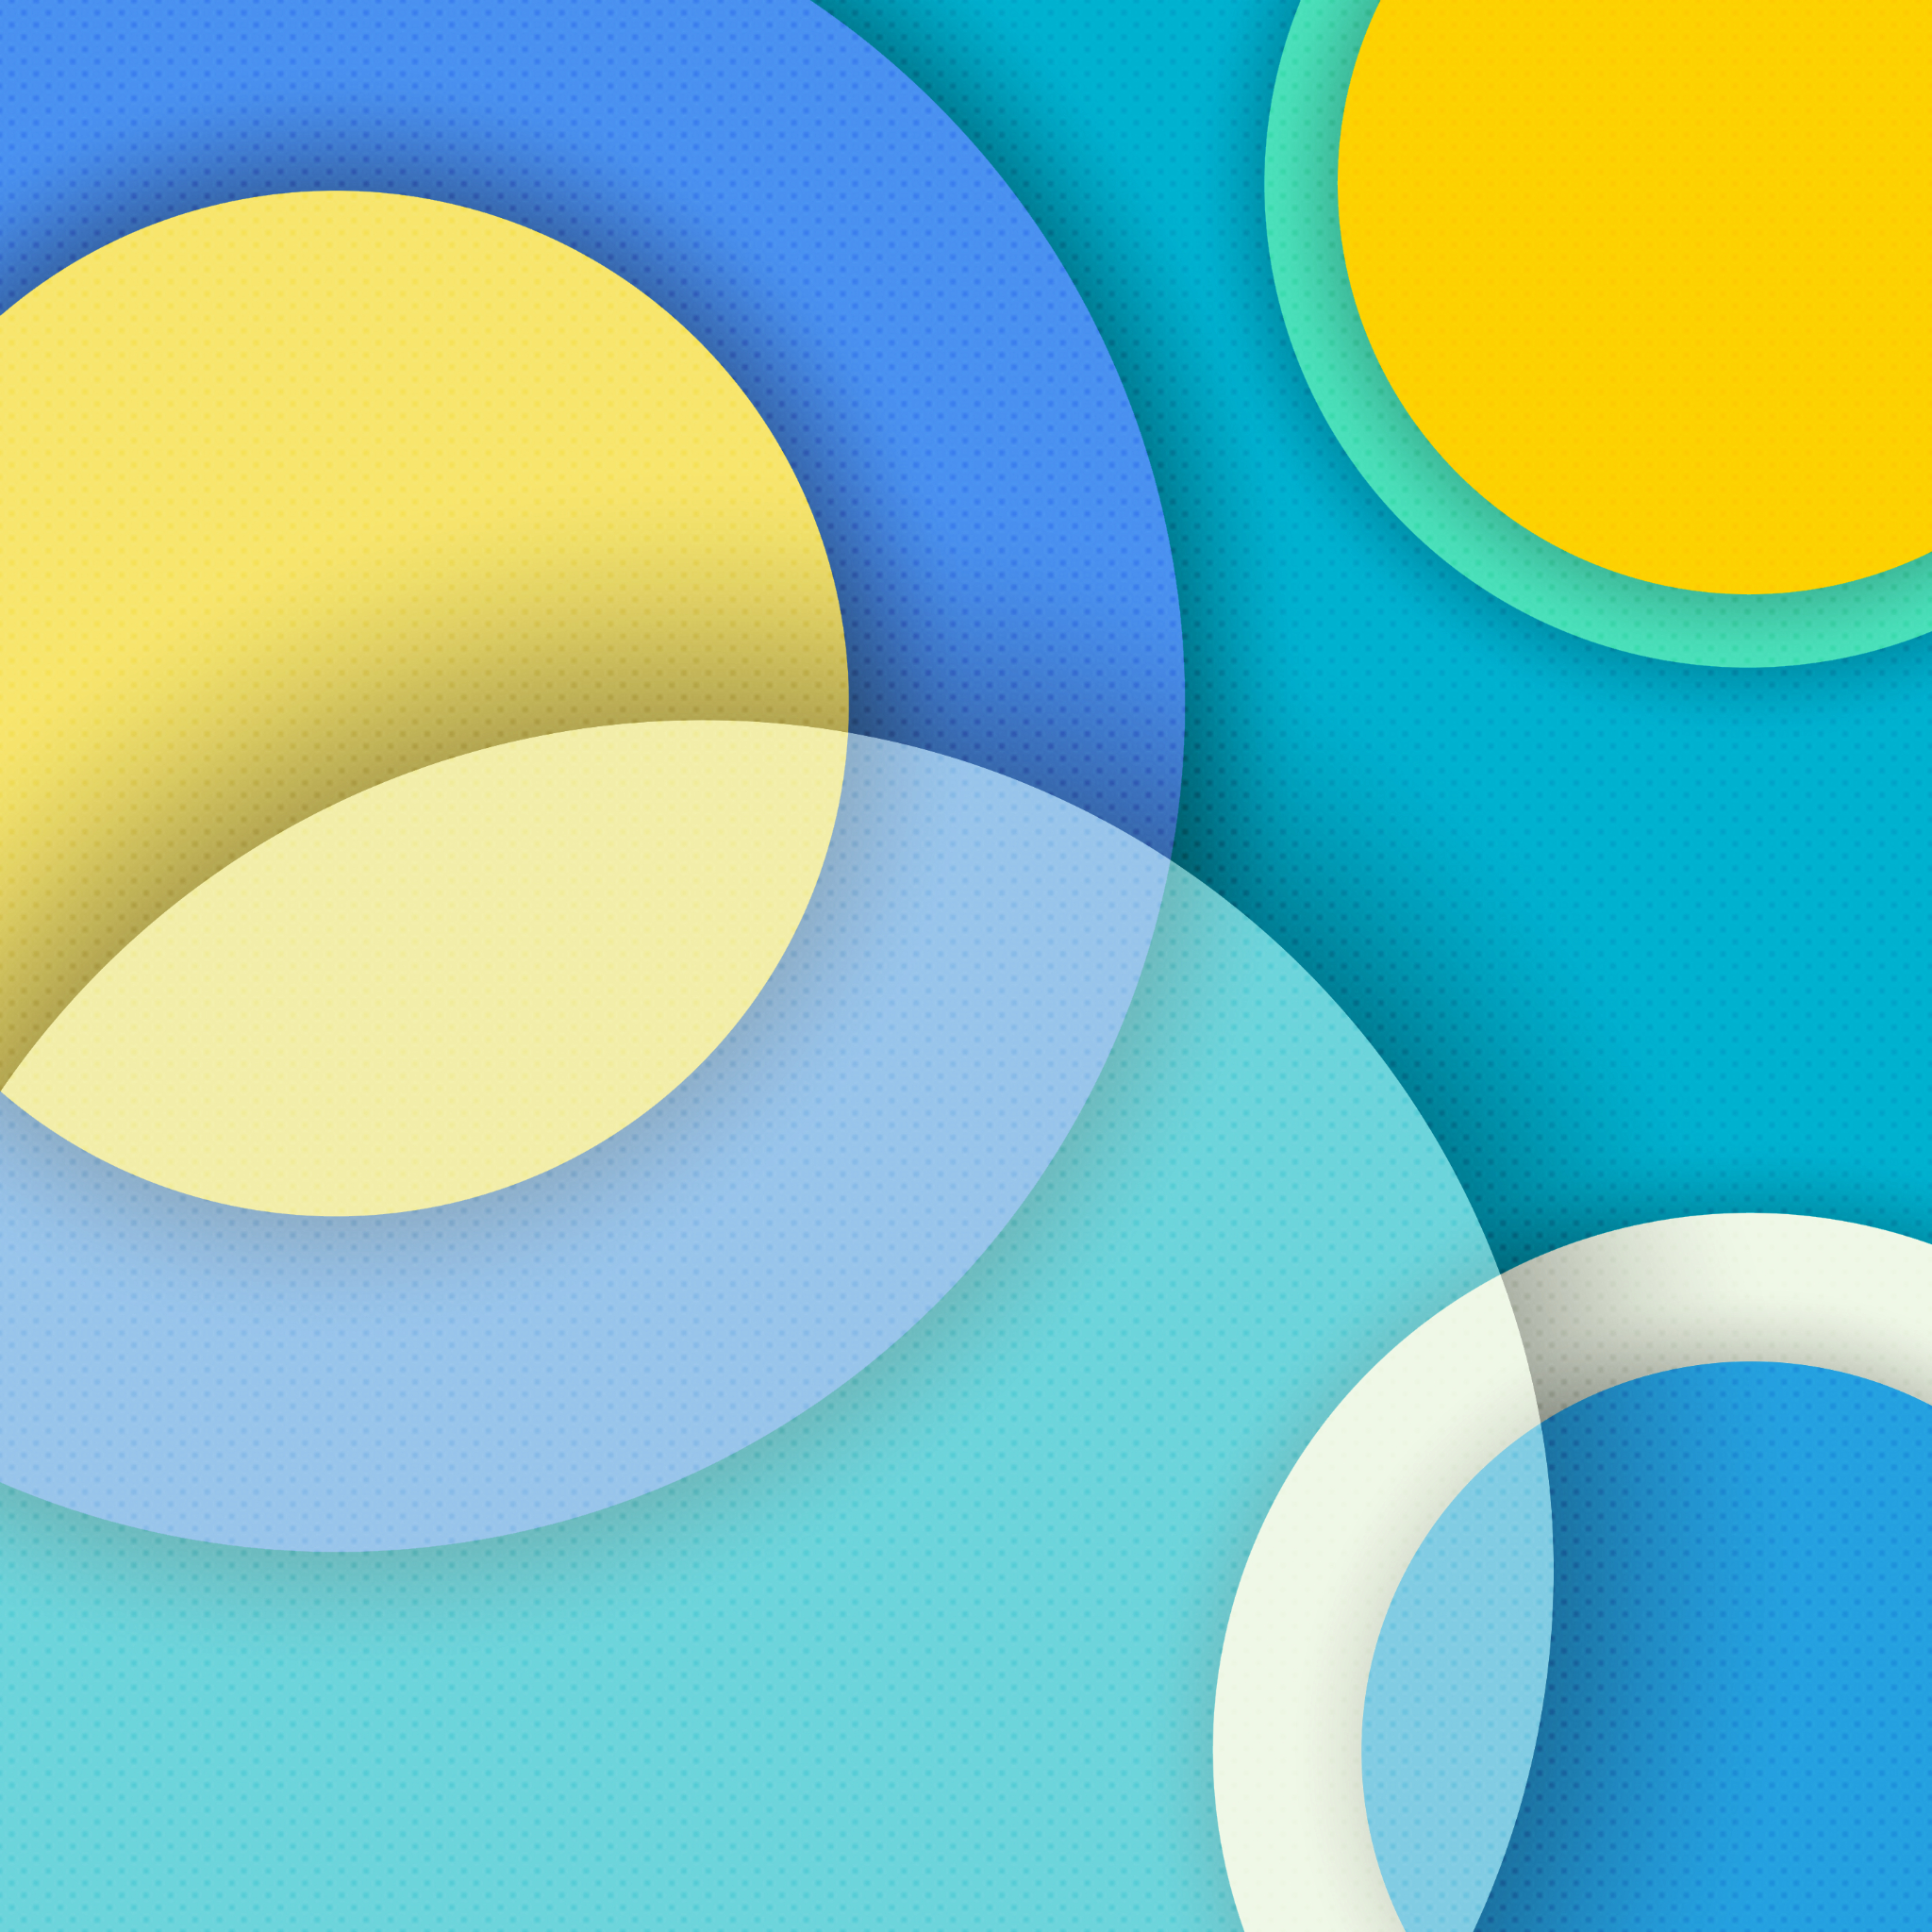 The post download 11 lollipop material design hd wallpapers appeared